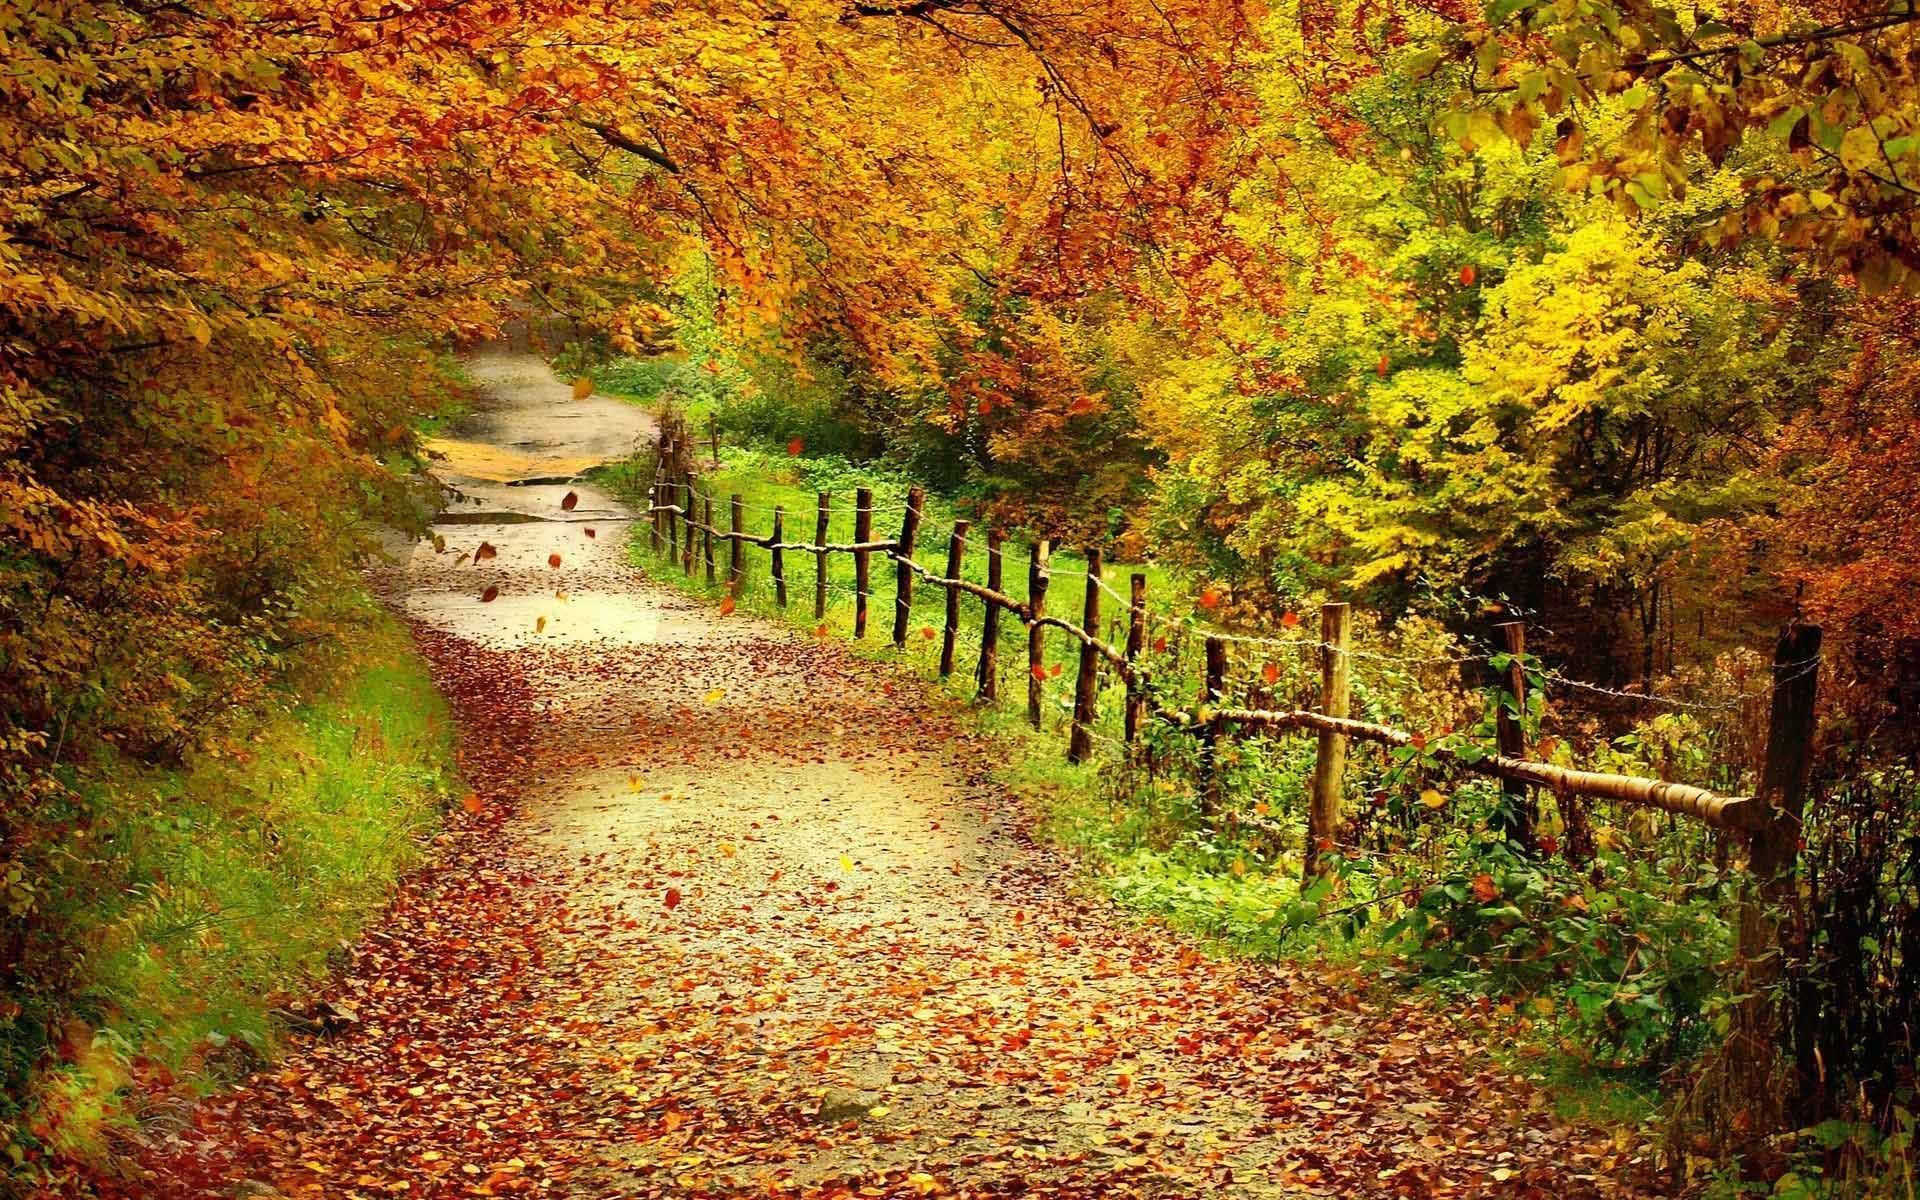 autumn desktop wallpaper | fall foliage wallpaper for desktop for